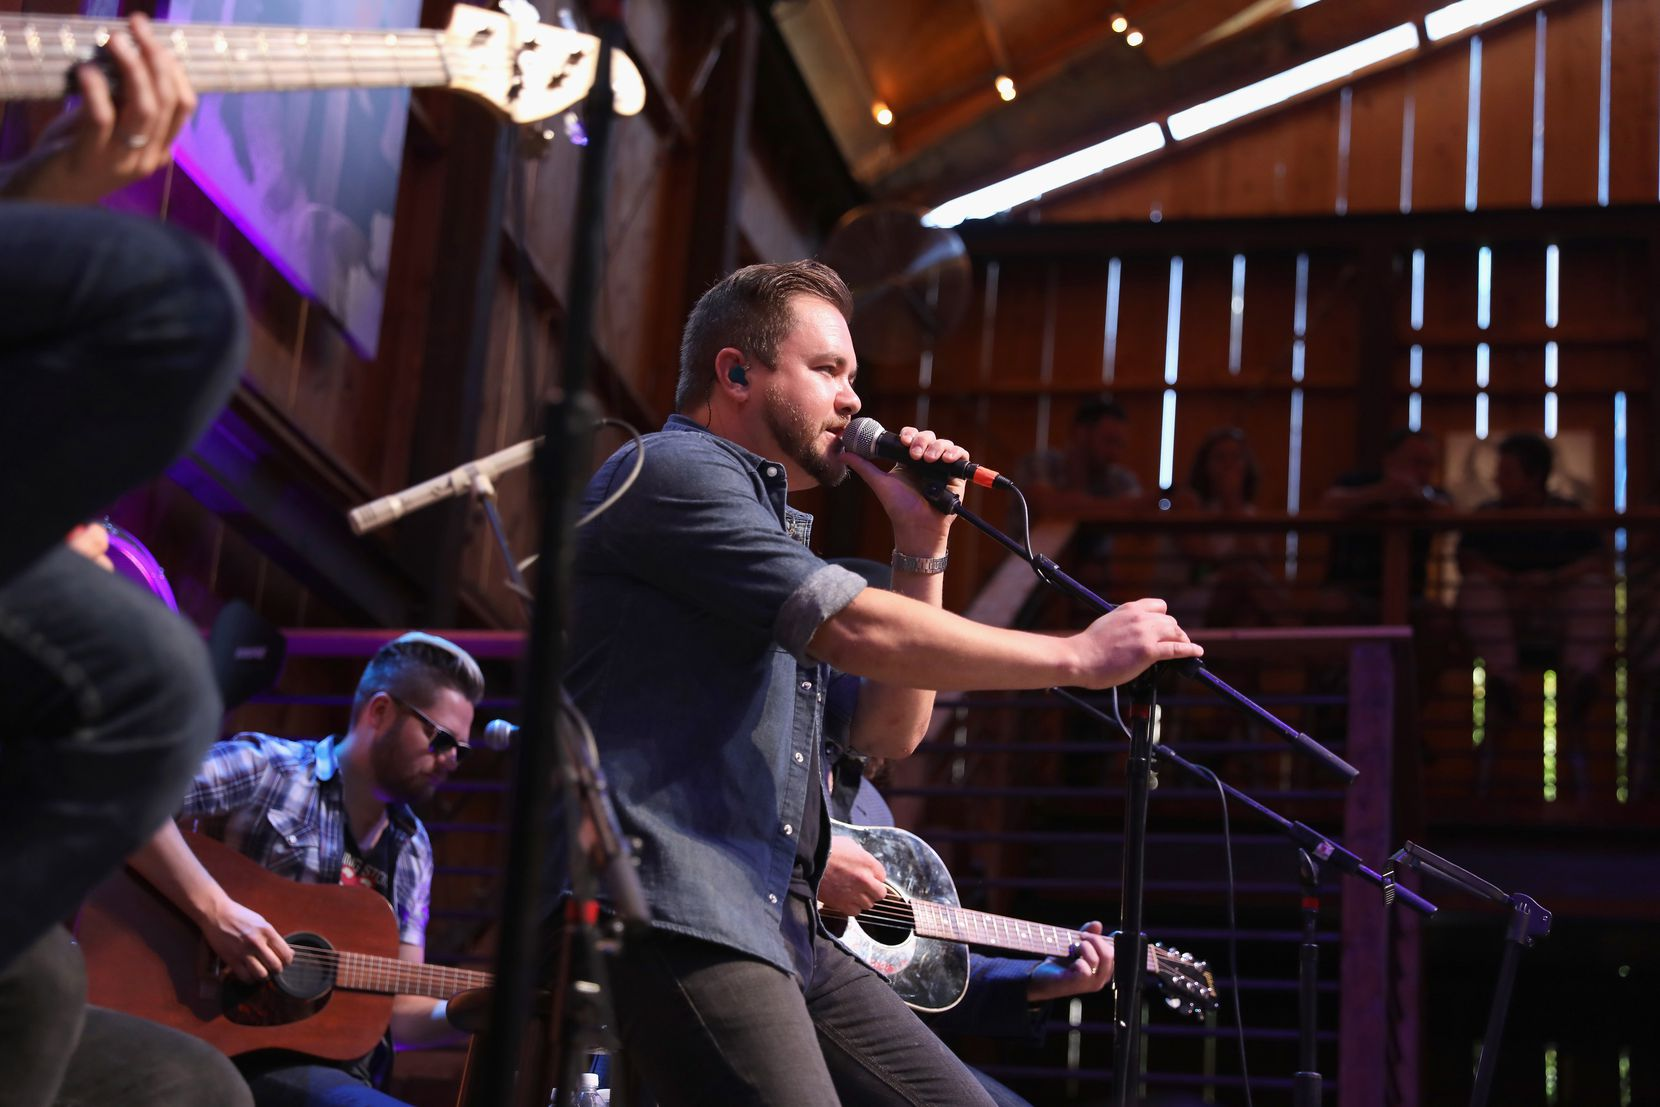 Mike Eli of the Eli Young Band performs onstage at the HGTV Lodge during CMA Music Fest on June 9, 2017 in Nashville.